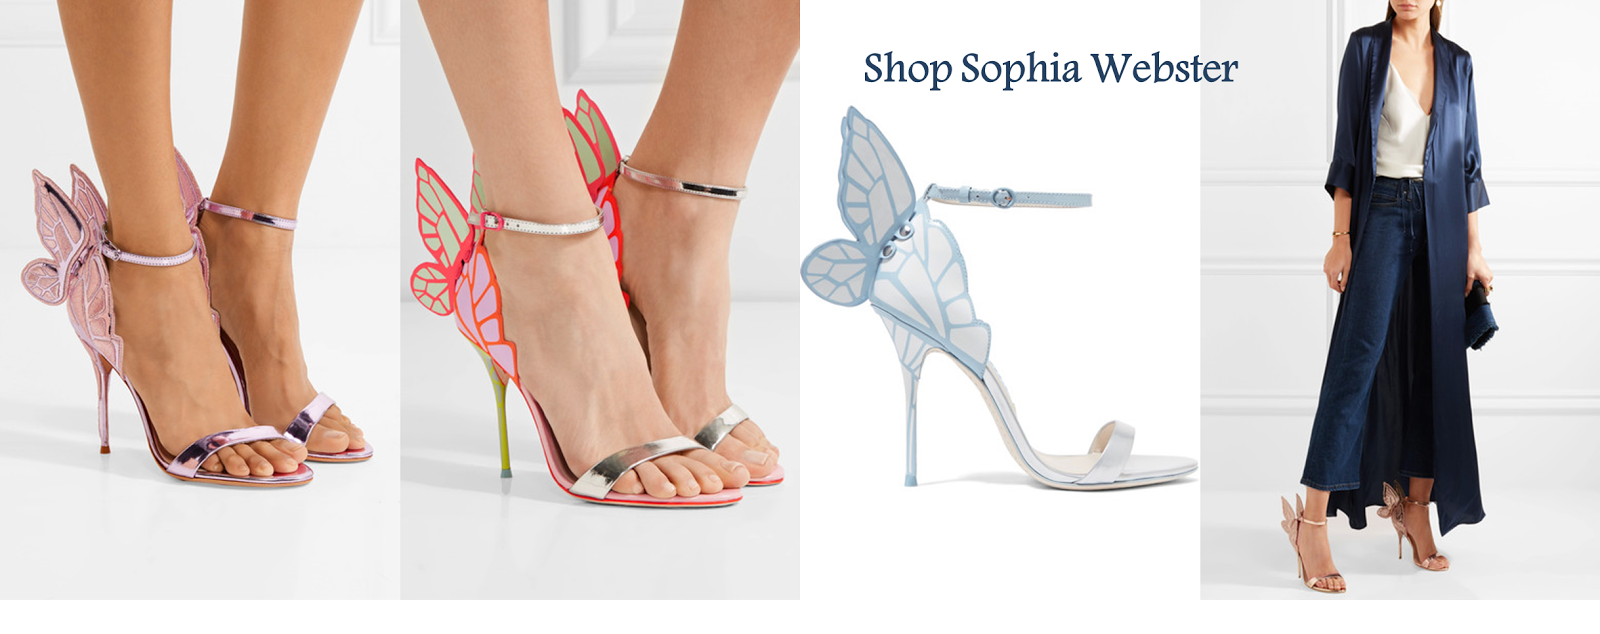 Shop Sophia Webster